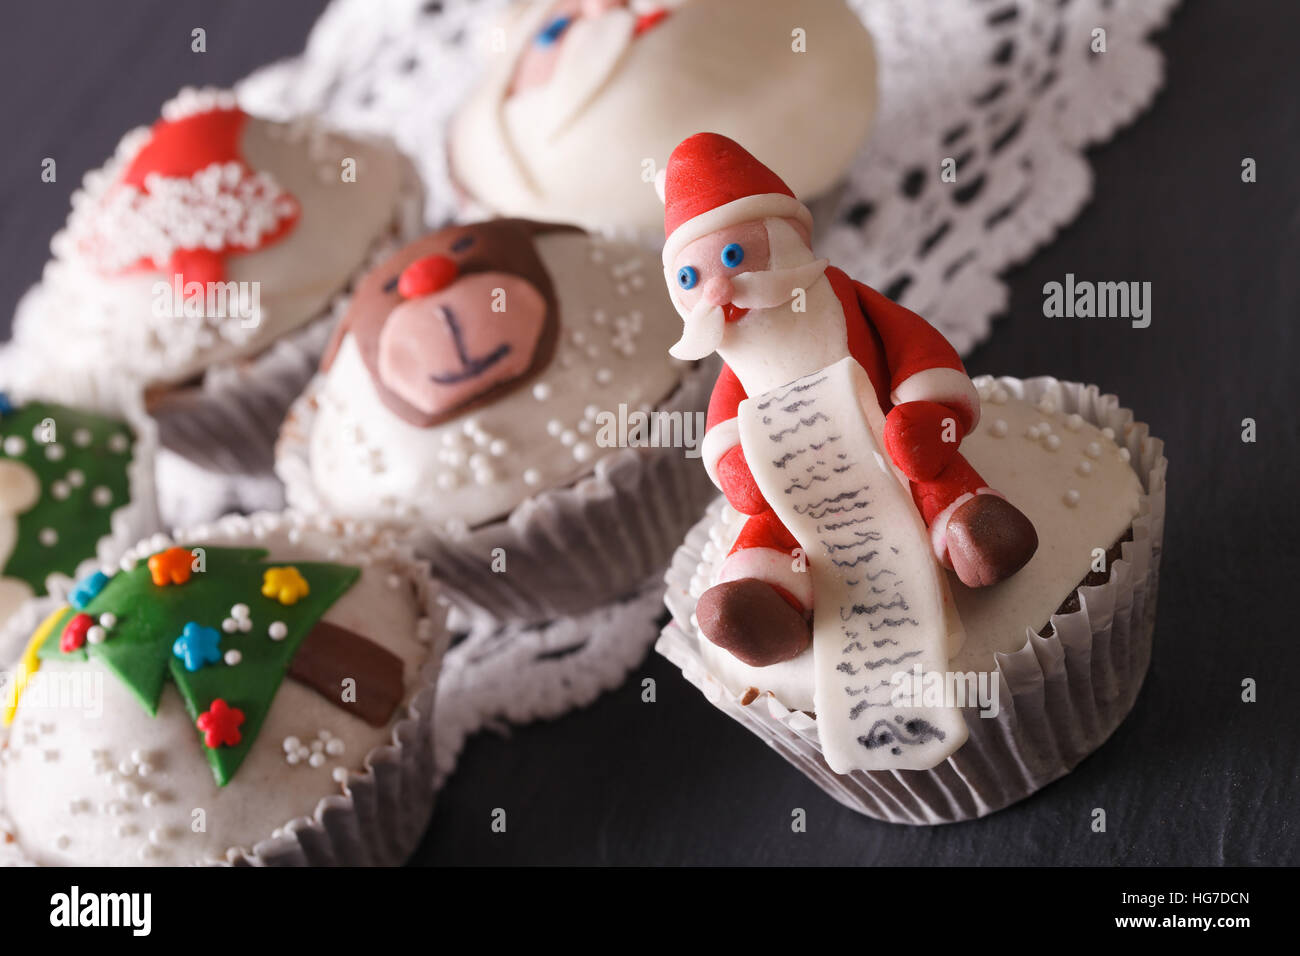 Beautiful delicious cupcakes with Christmas decorations close-up. Horizontal - Stock Image